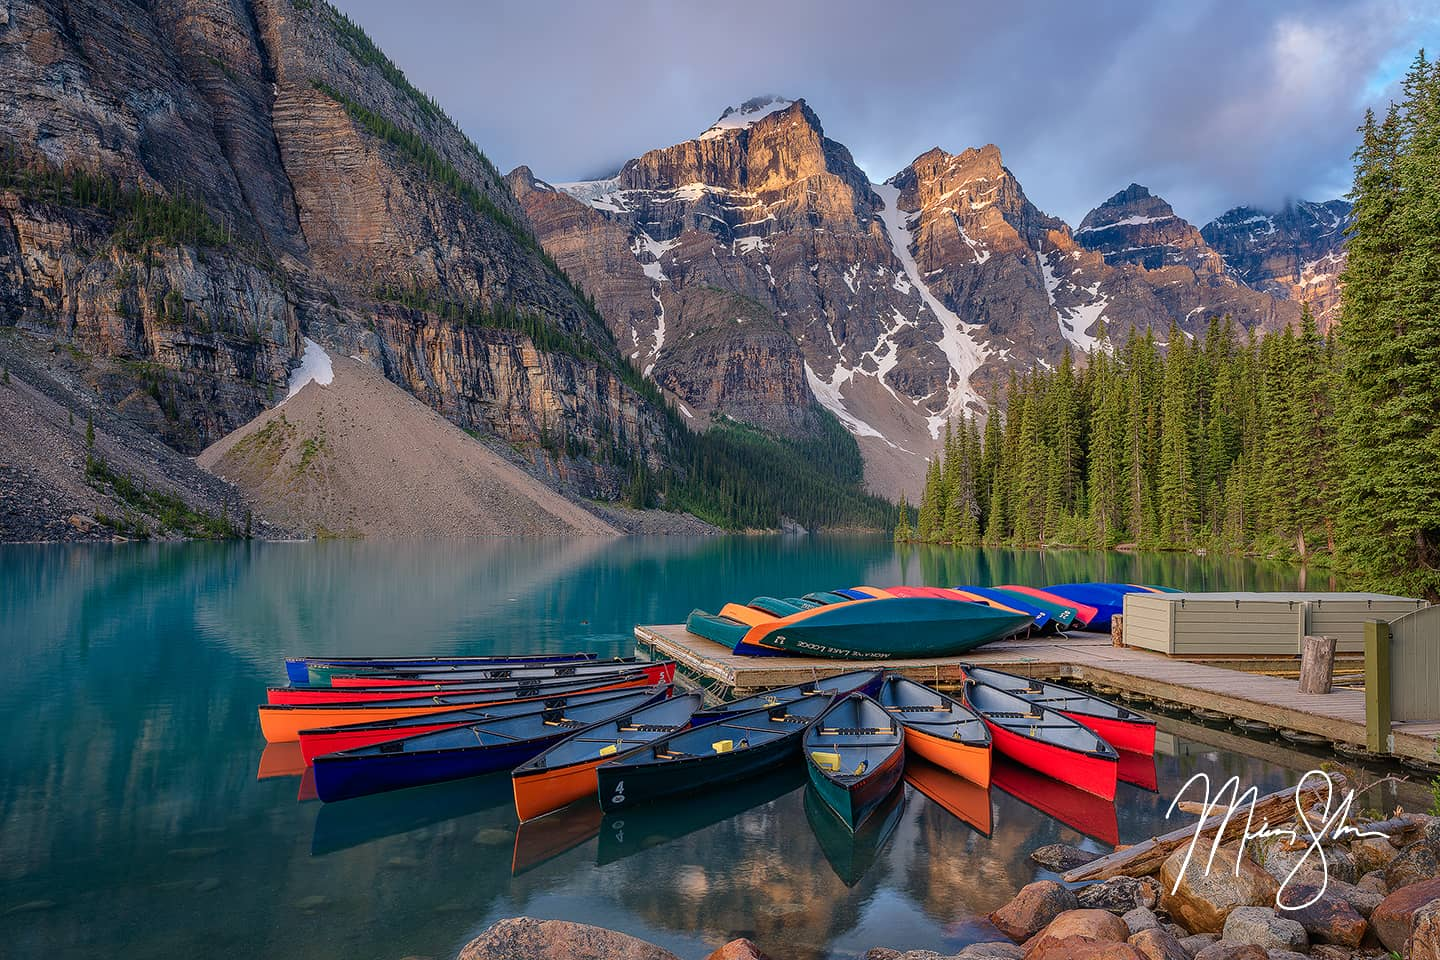 Open edition fine art print of Moraine Lake Sunrise at the Canoe Dock from Mickey Shannon Photography. Location: Moraine Lake, Banff National Park, Alberta, Canada